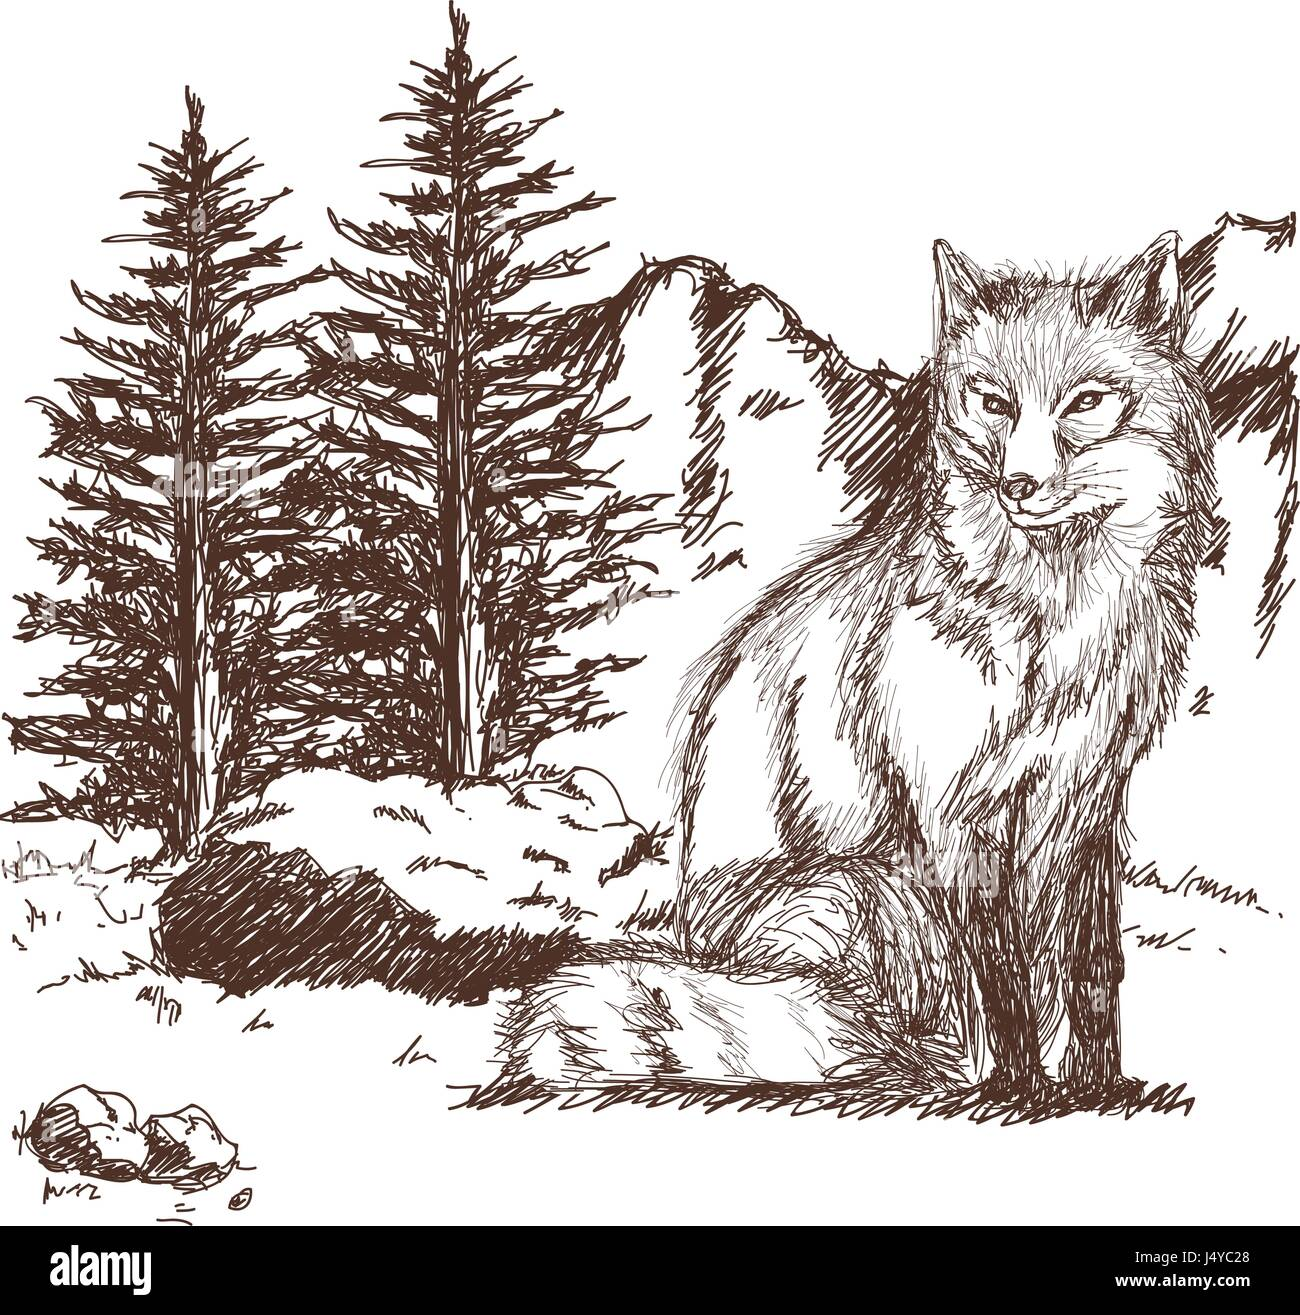 wolf wildlife animal image is hand drawn. pencil sketch of wolf landscape Stock Vector